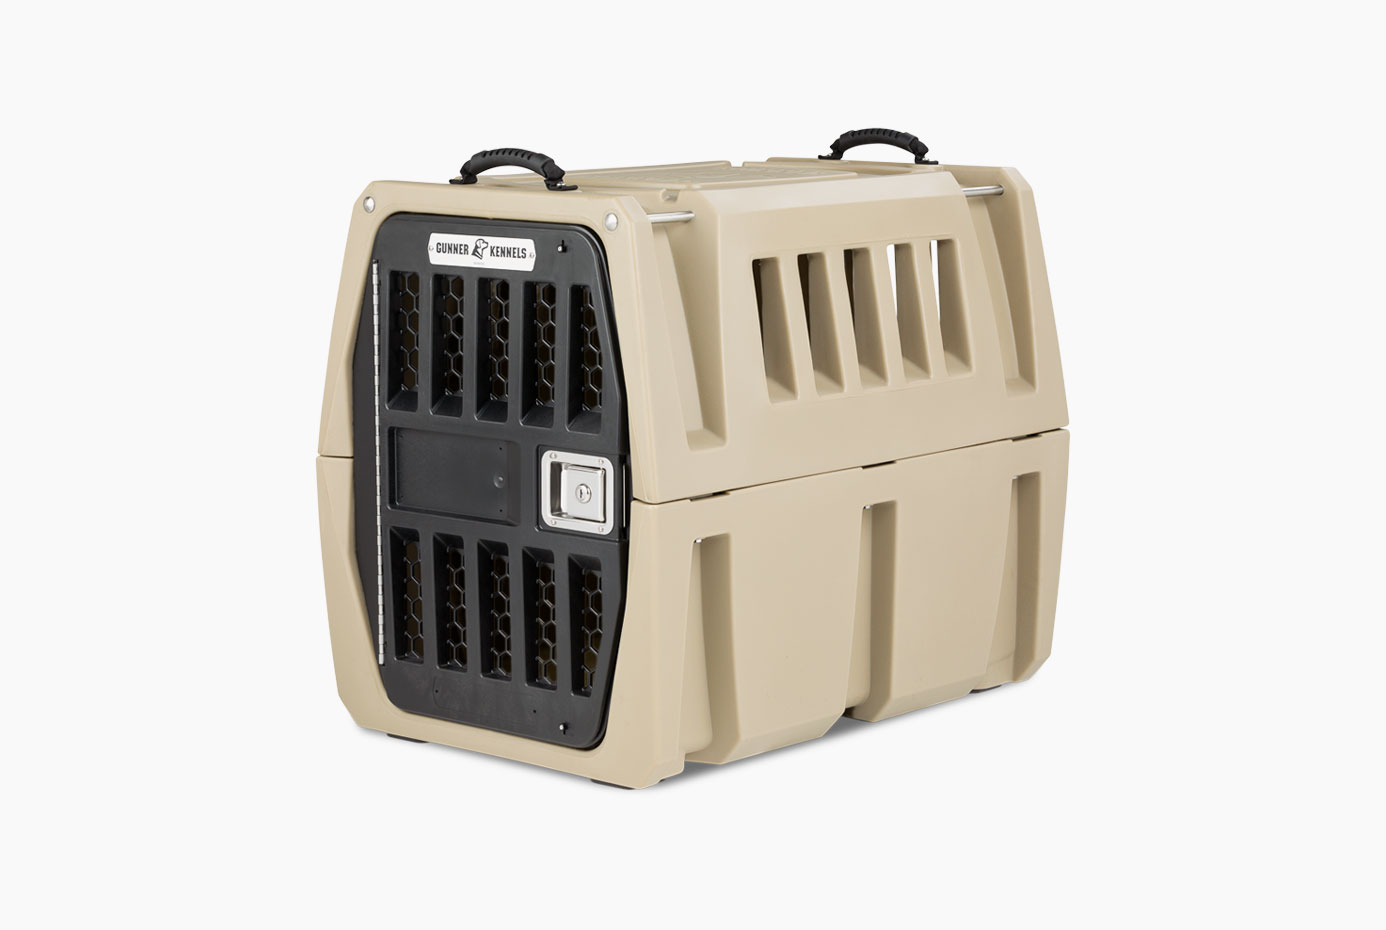 Gunner Kennels G1 Intermediate Kennel - Dad's best friend (besides you, of course) is entirely deserving of traveling in style and safety. Designed and made in the USA to be the most durable kennel that money can buy, no detail of the G1 has been overlooked. Why settle for less?